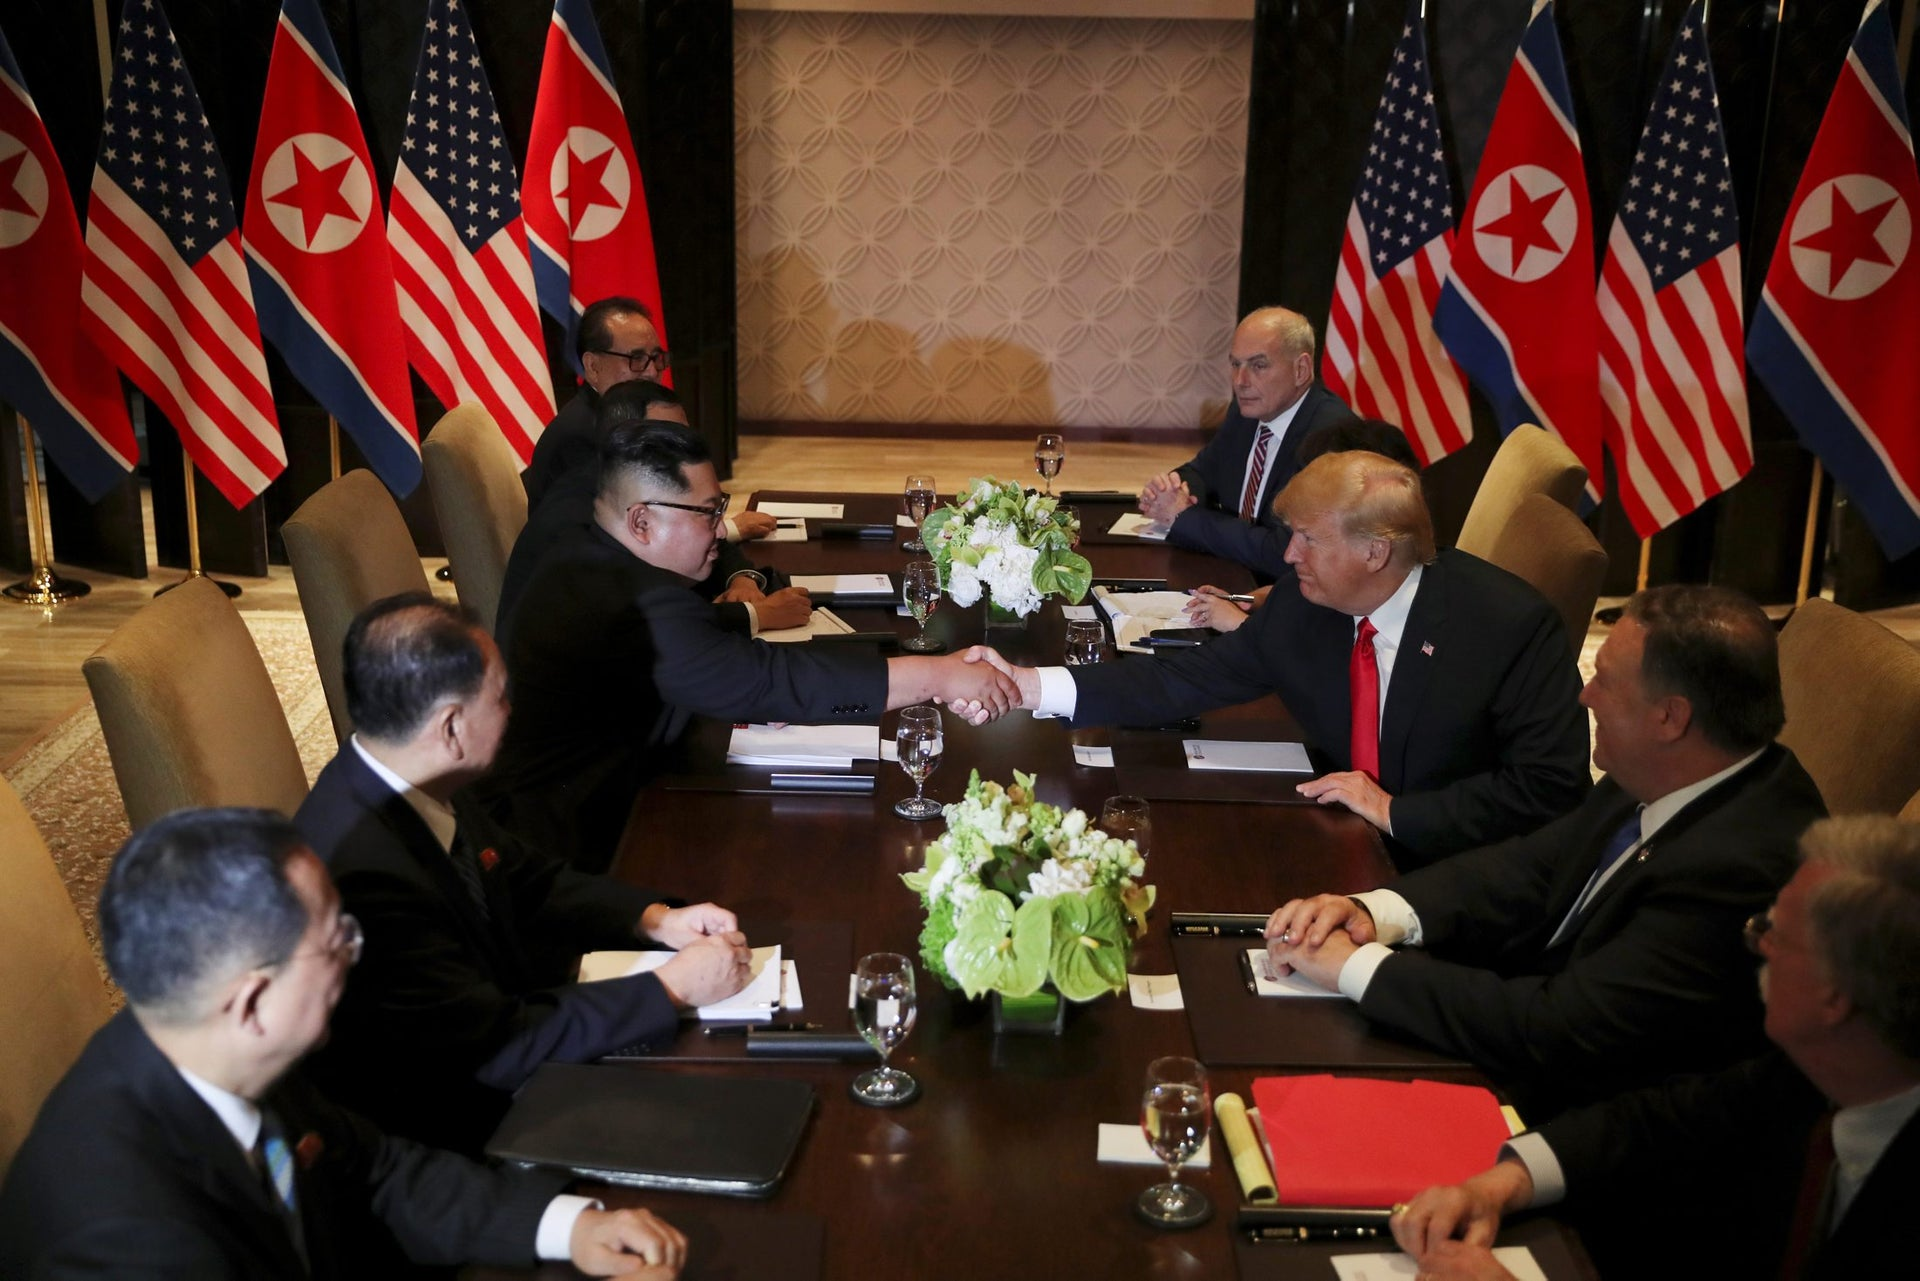 Thrice lucky: Kim and Trump pose for a third handshake during negotiations. Sentosa, Singapore, 12 June 2018